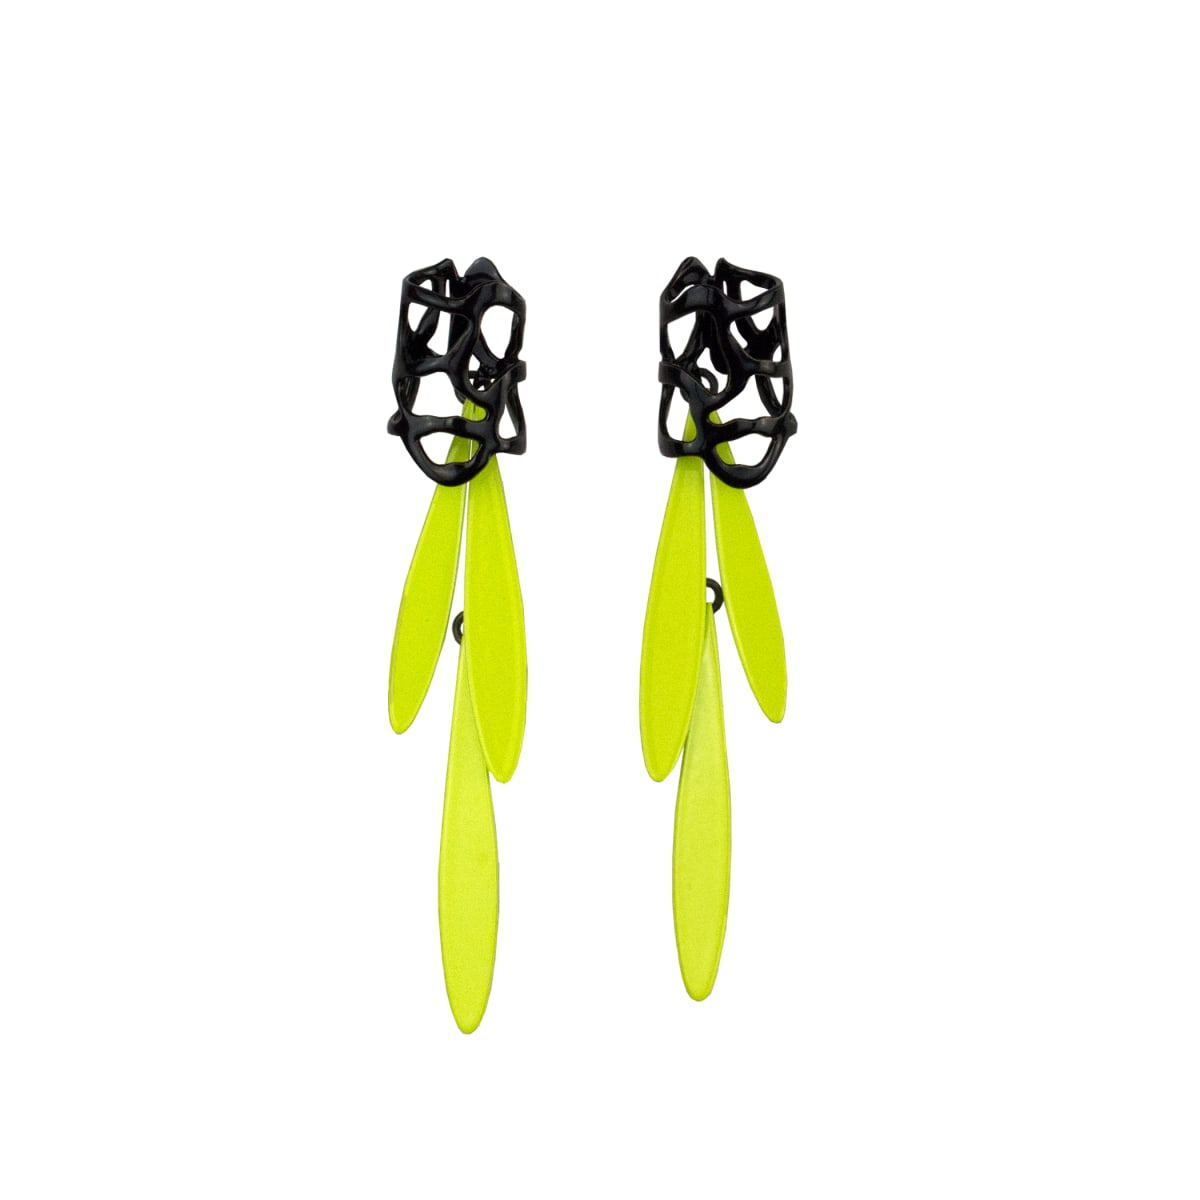 Laura Wood, Lace Stud and Fringe Earring